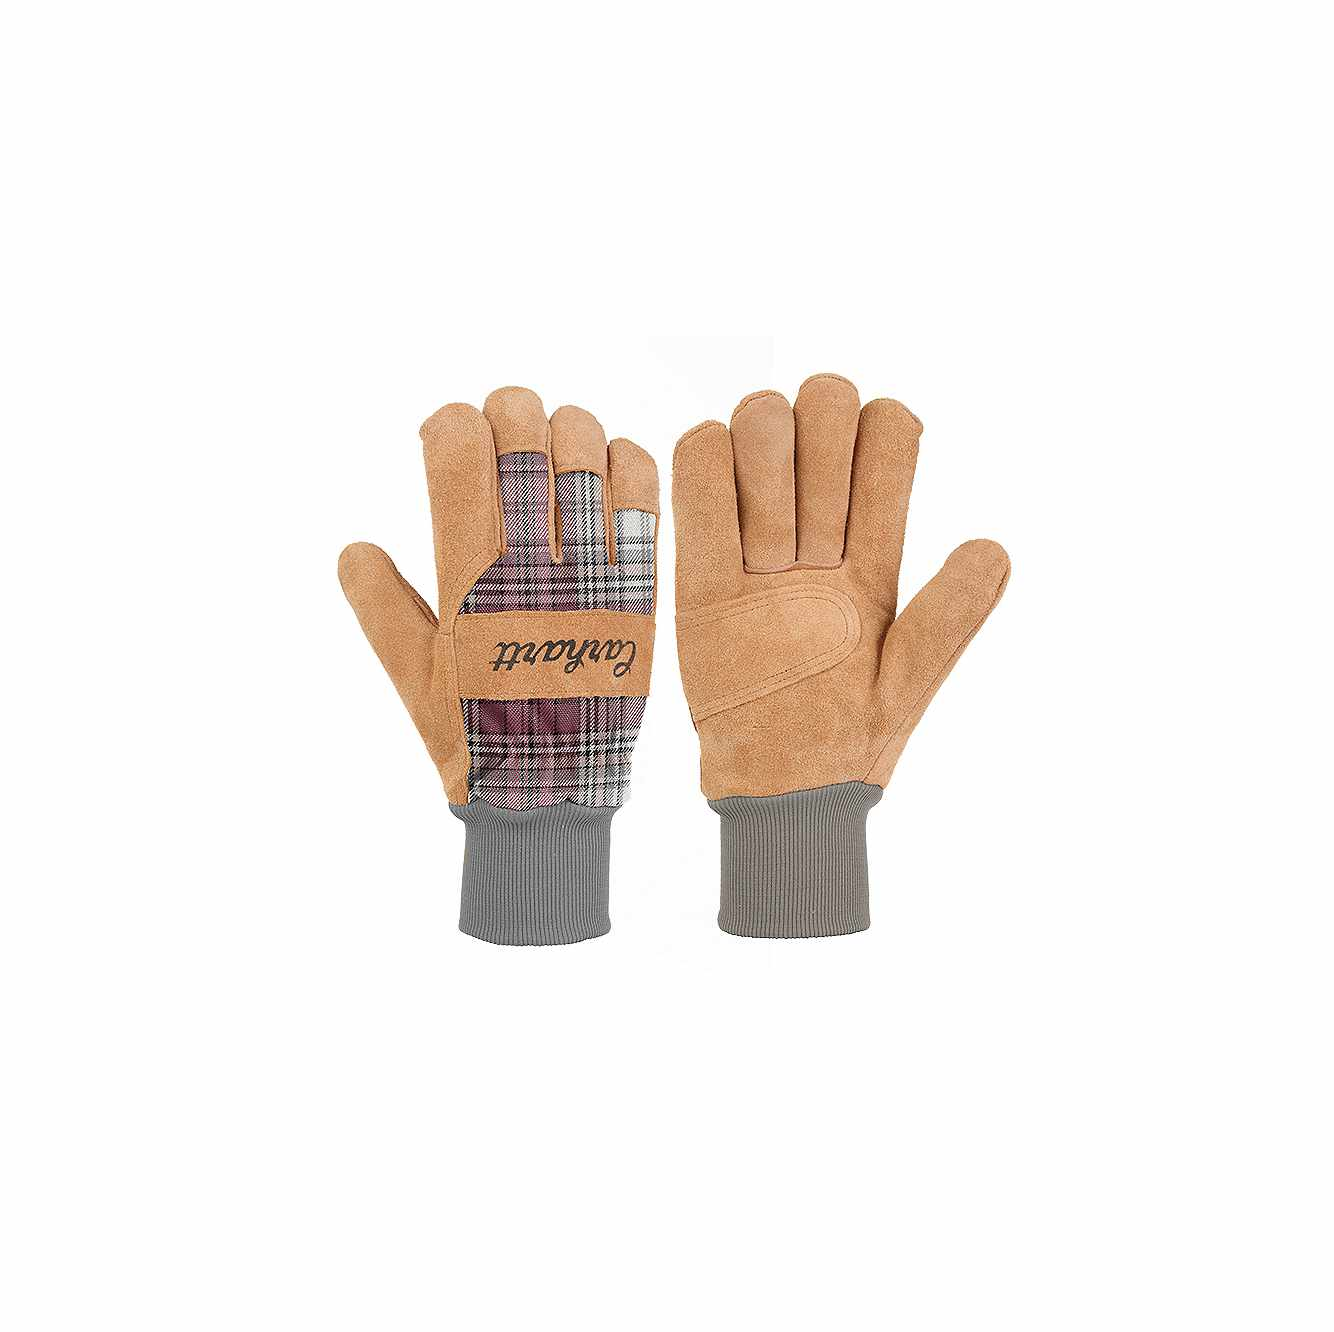 Picture of Suede Knit-Cuff Work Glove in Wild Rose Plaid